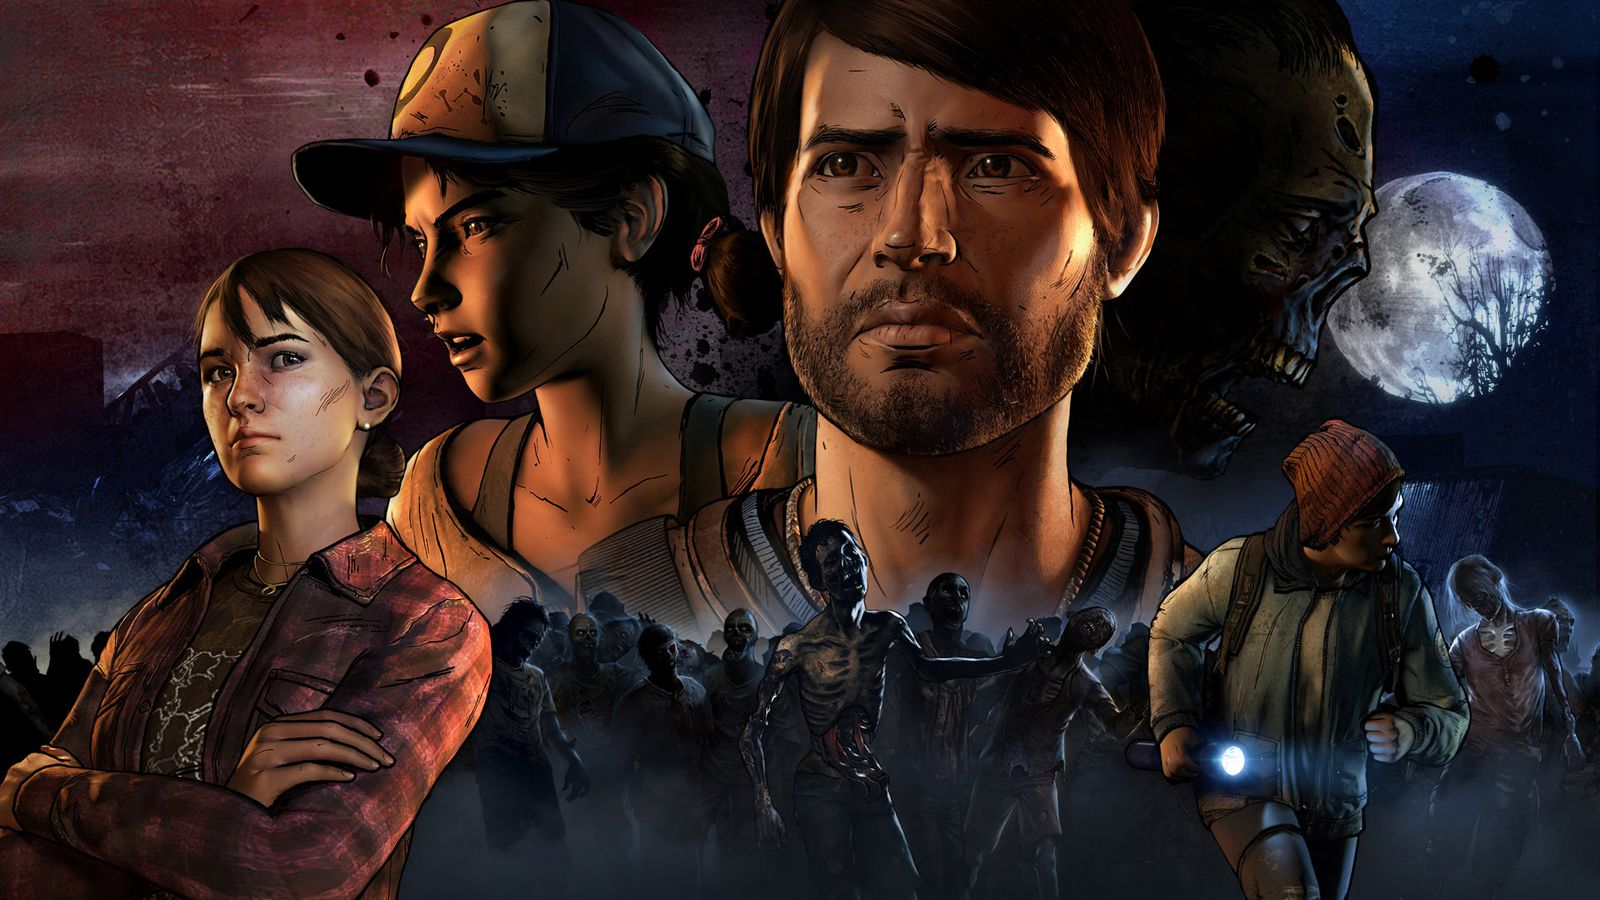 The Walking Dead Season 3: A New Frontier review